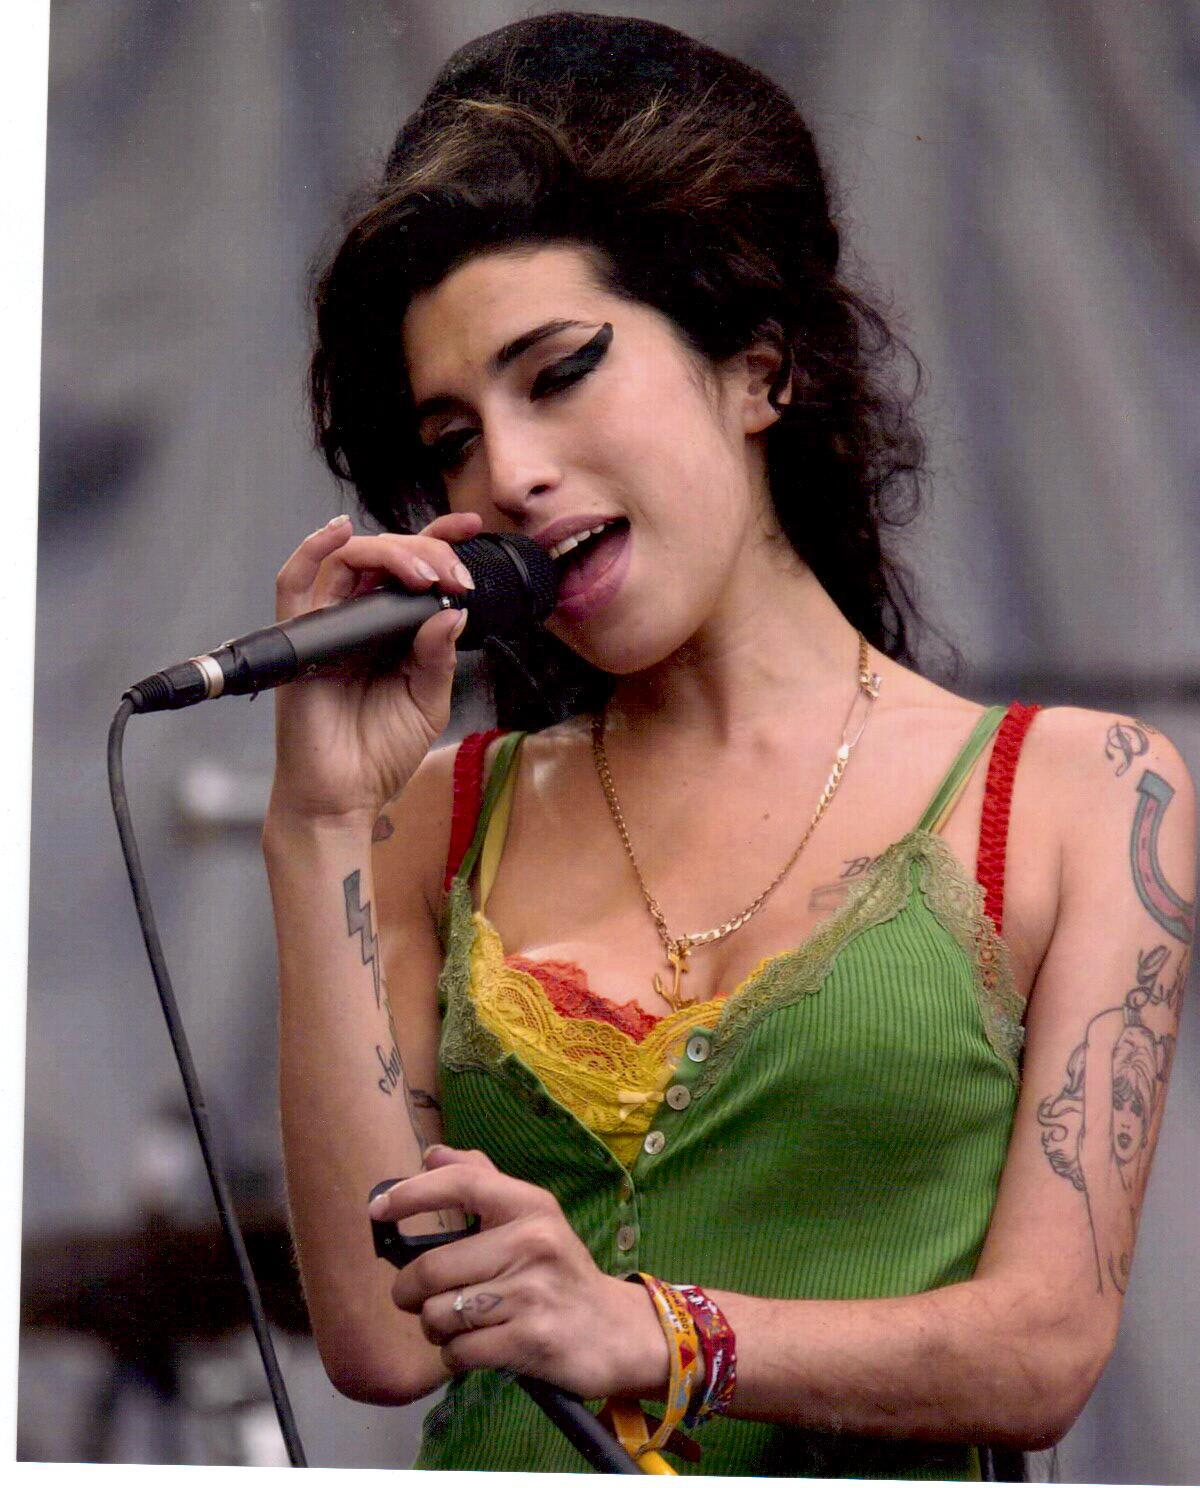 Primary image for Amy Winehouse Vintage 8X10 Color Music Memorabilia Photo